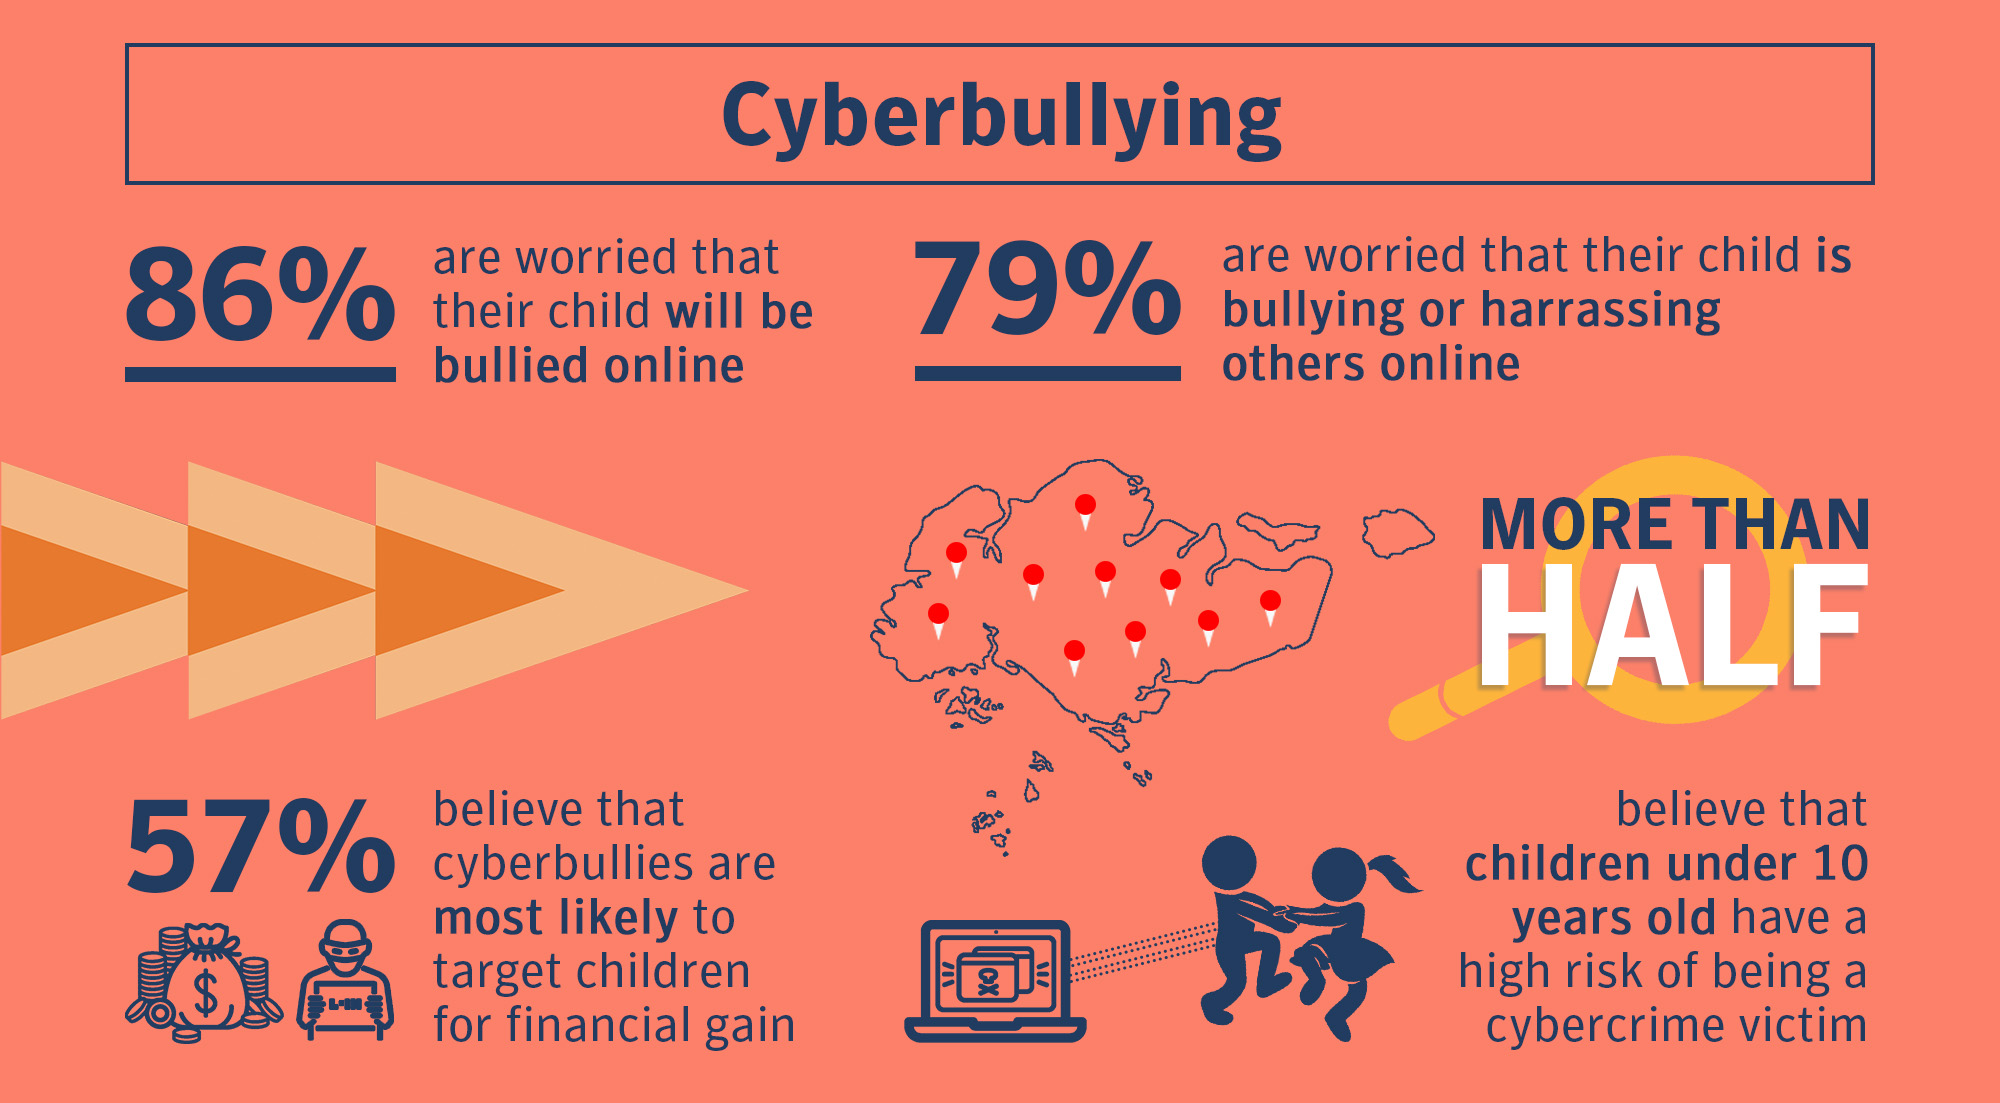 Infographic of cyberbullying statistics